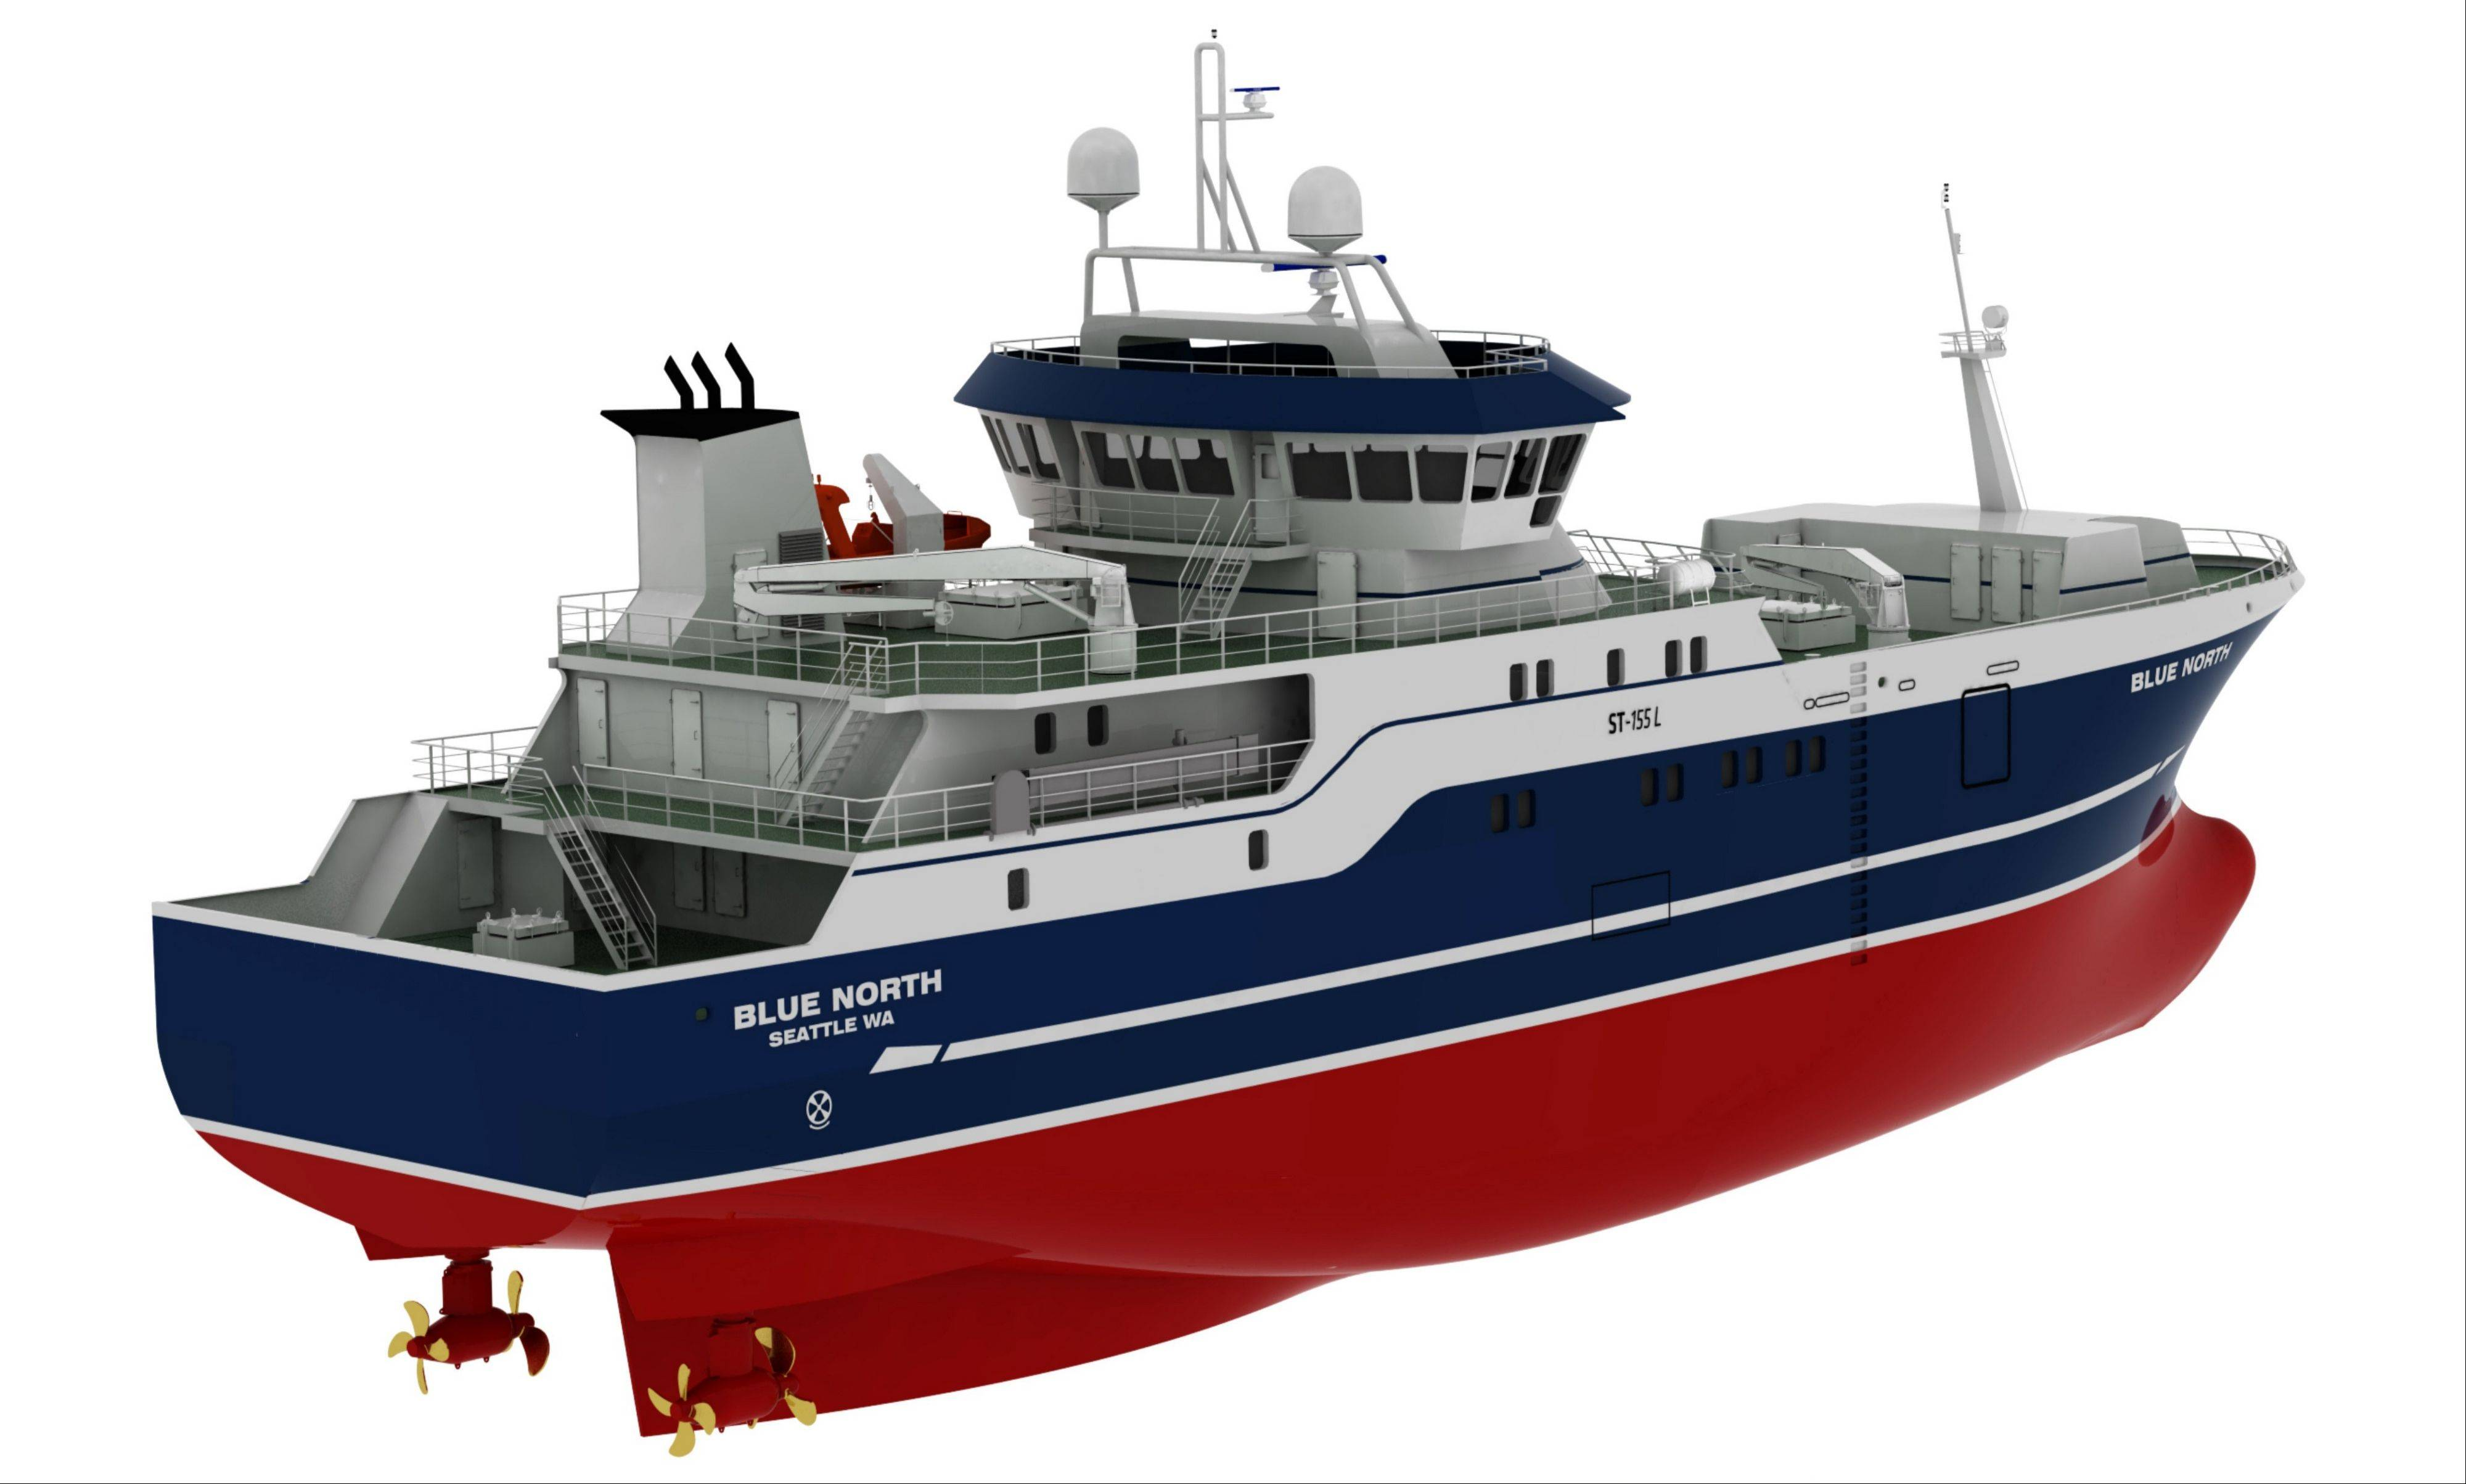 This computer drawing provided by Blue North Fisheries shows the new 191-foot commercial fishing boat design.